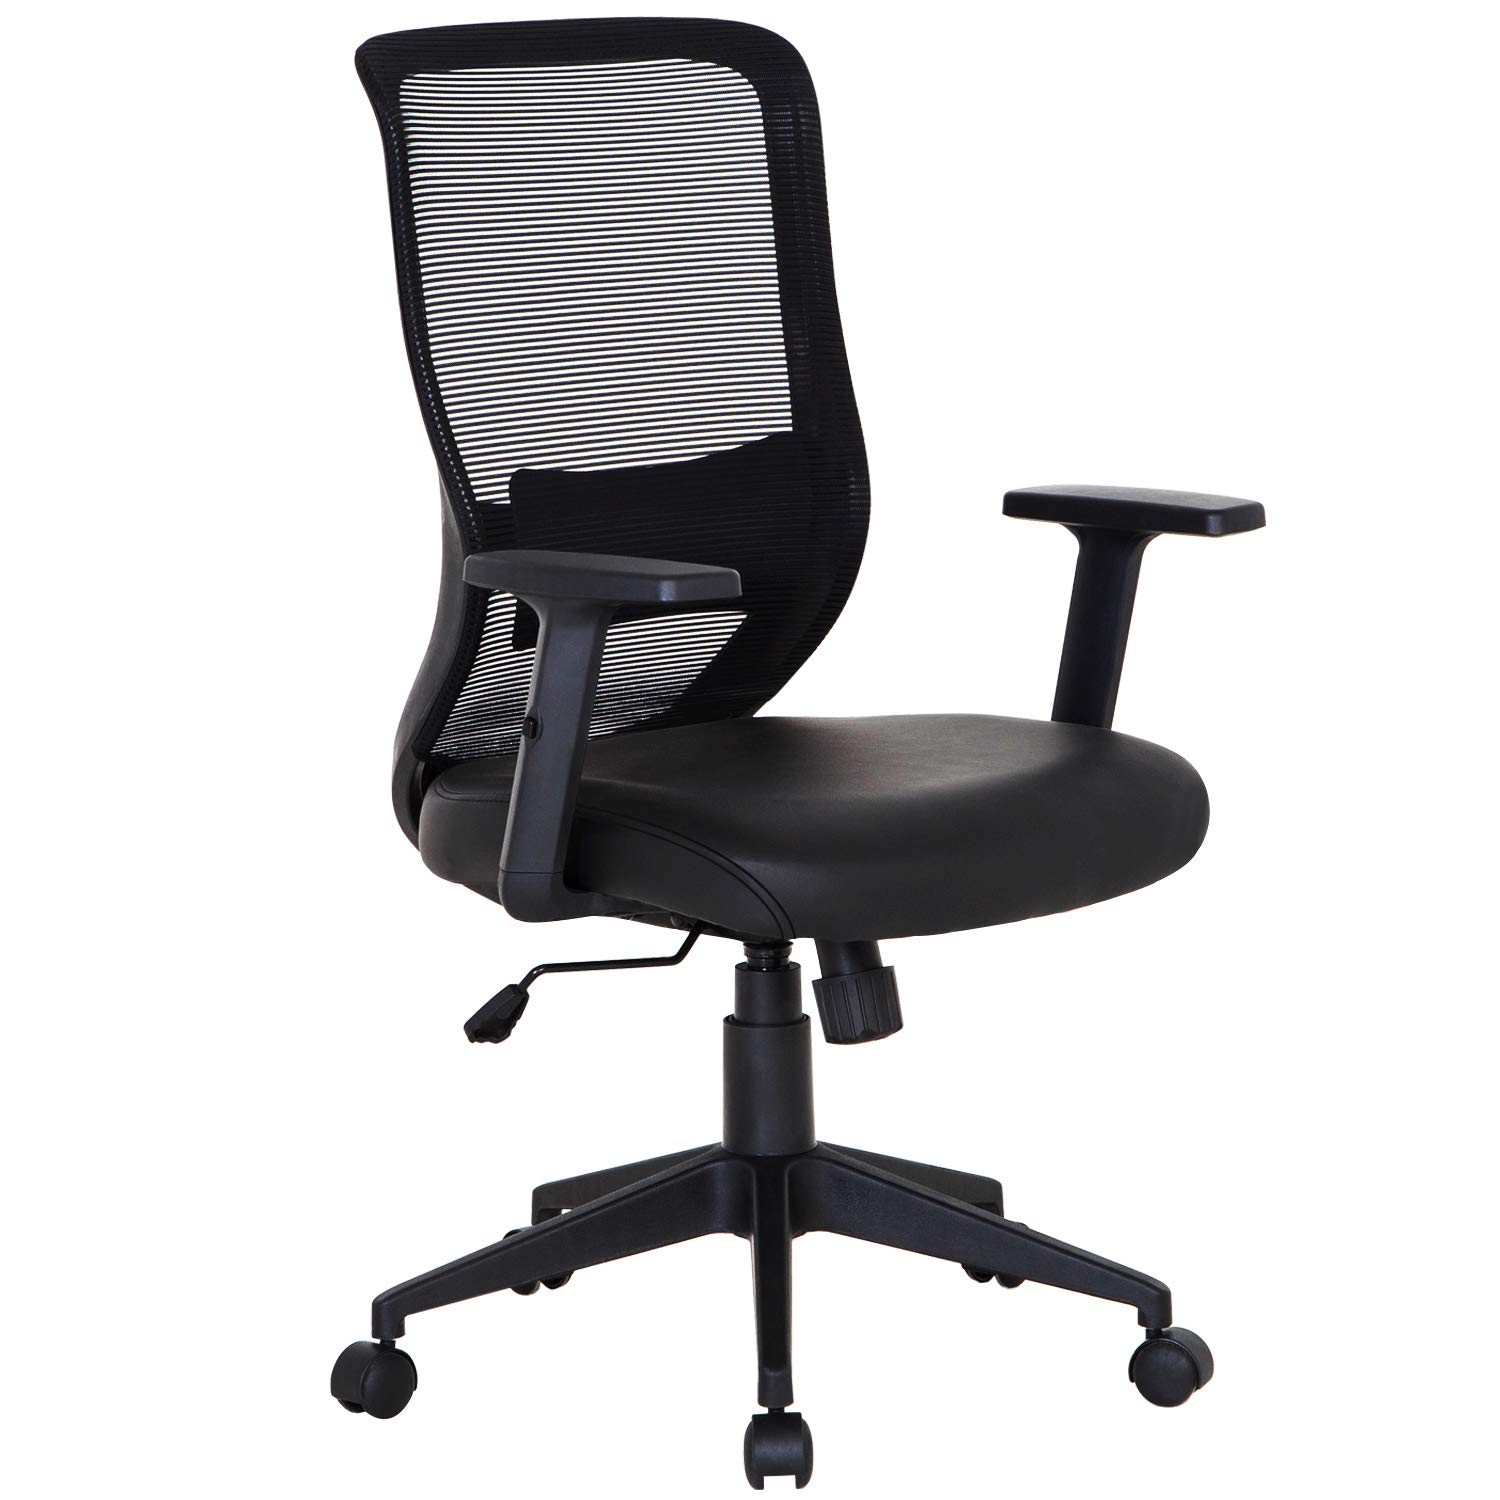 VECELO Pu Cushion Home Office Chair for Task/Desk Work-Black by VECELO